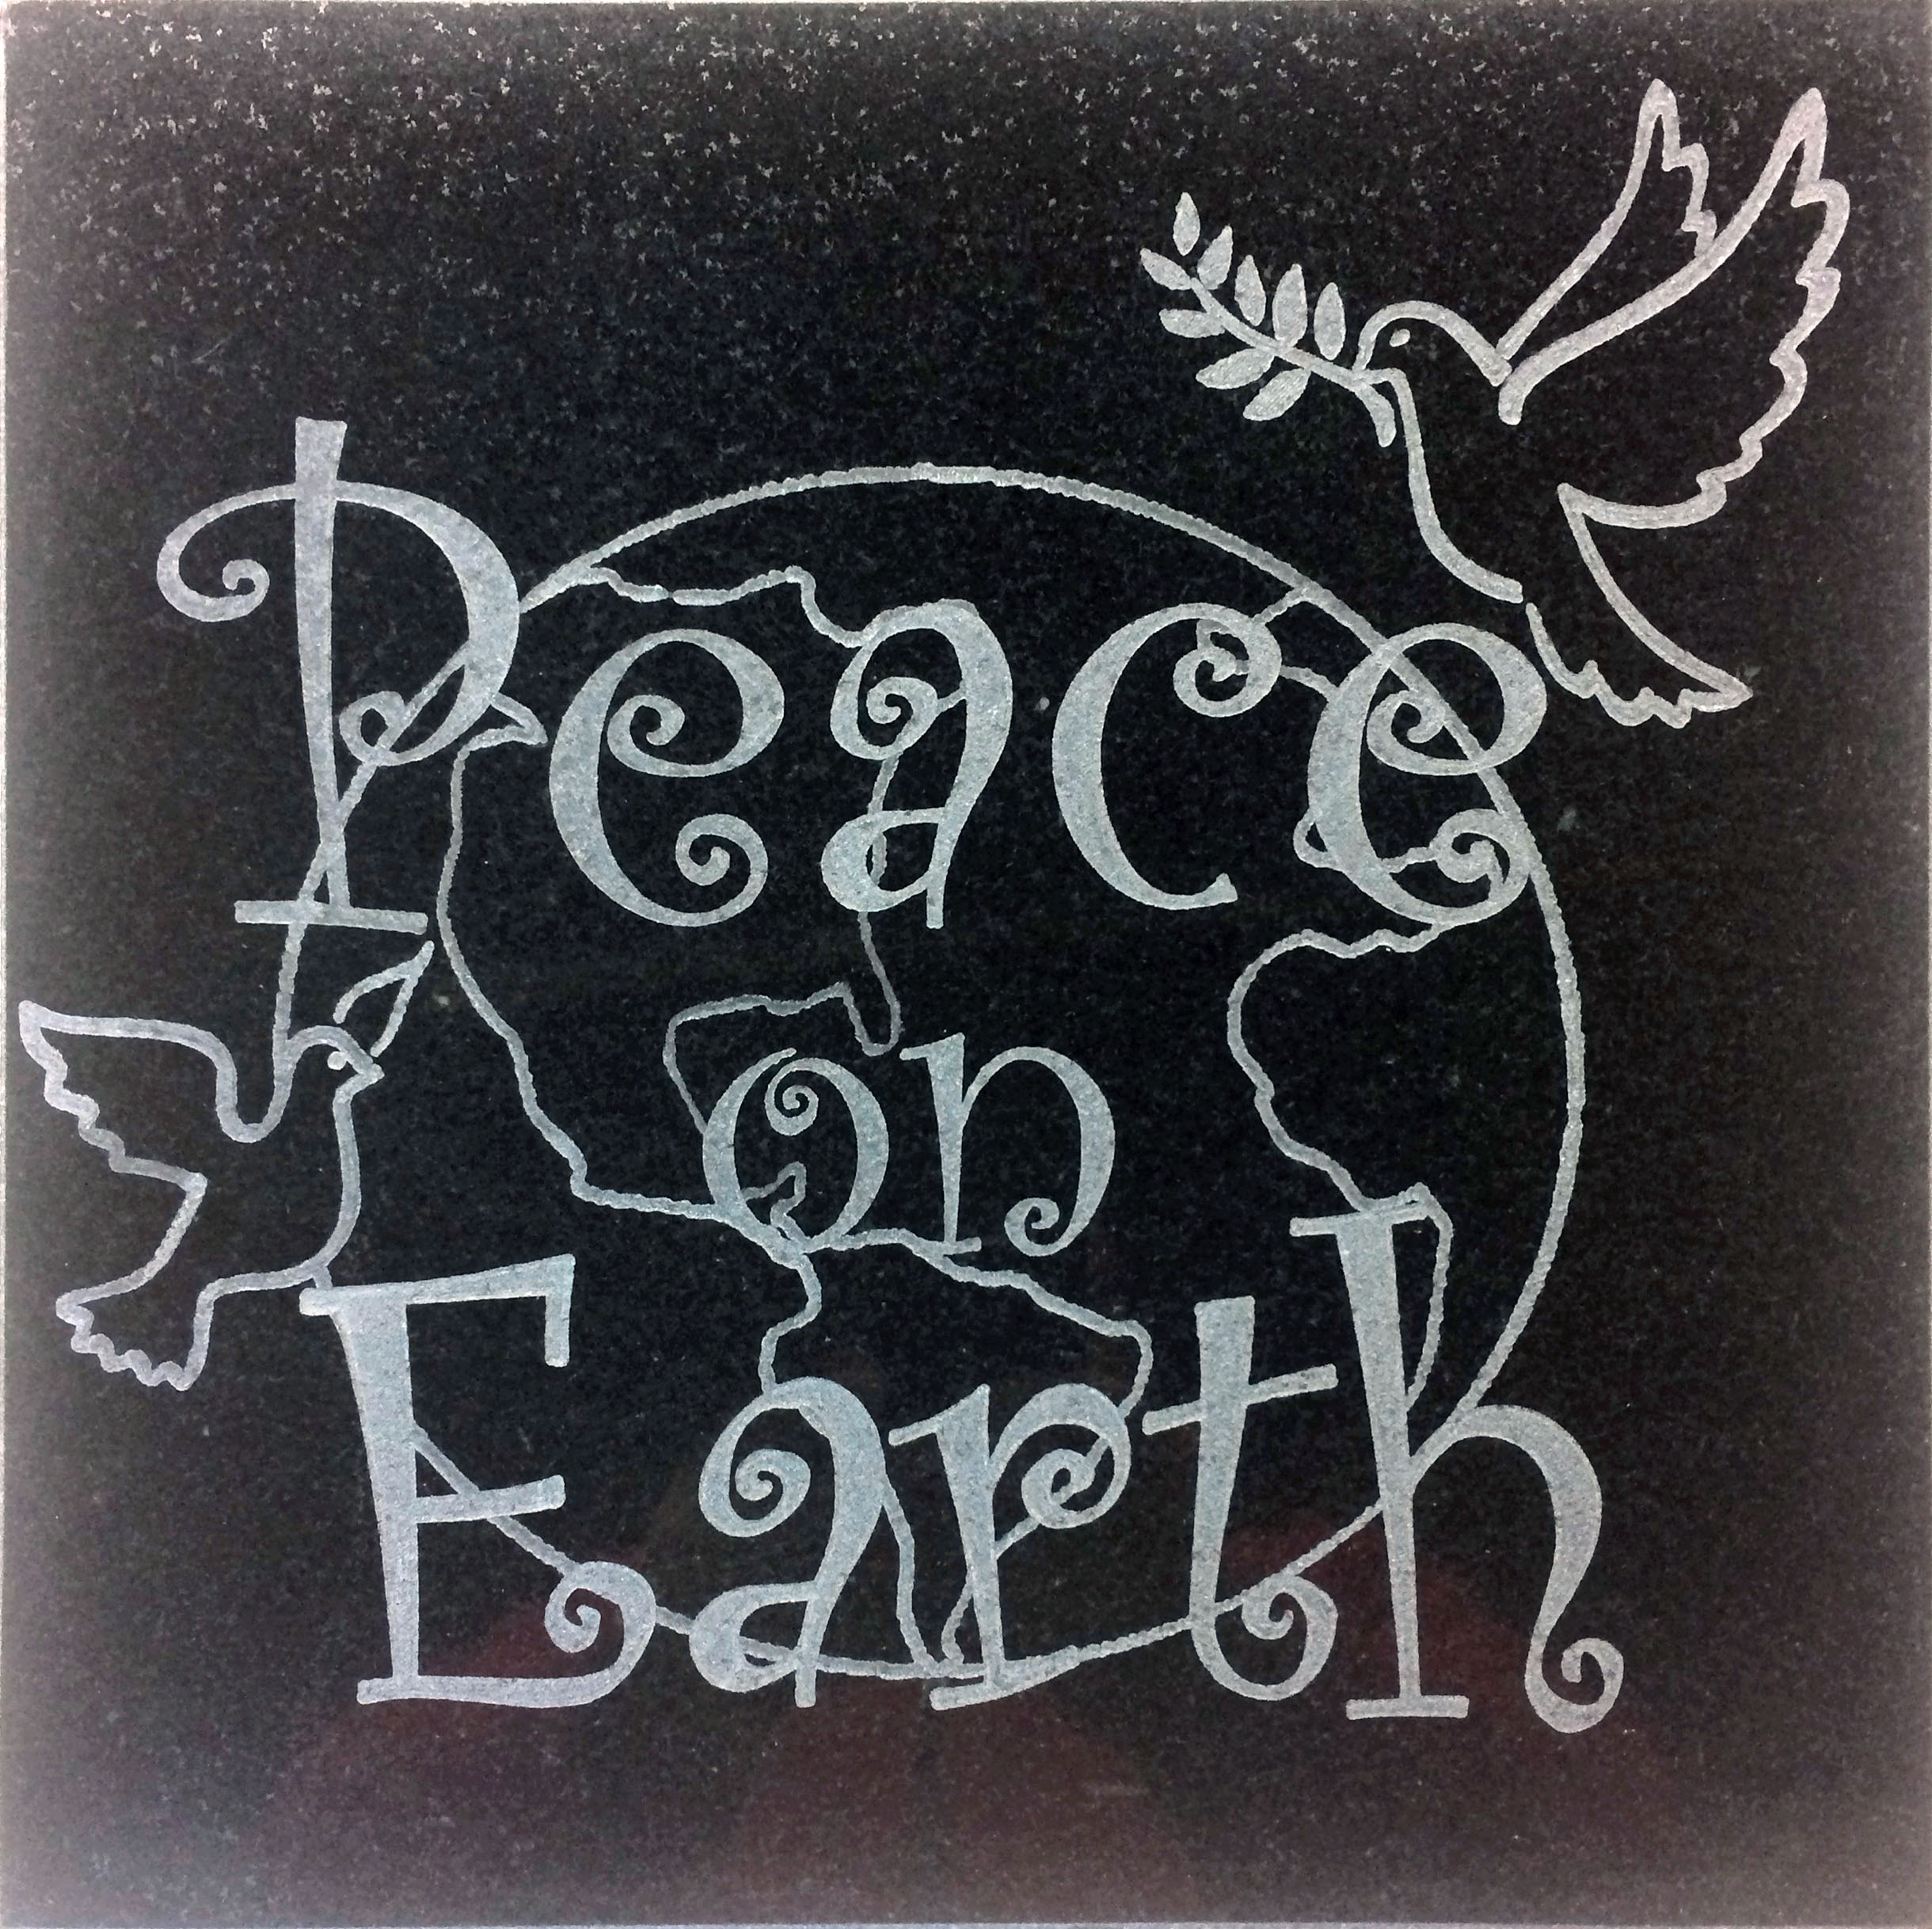 "Image logo for 12"" X 12"" Engraved Black Granite Tile - Peace on Earth"